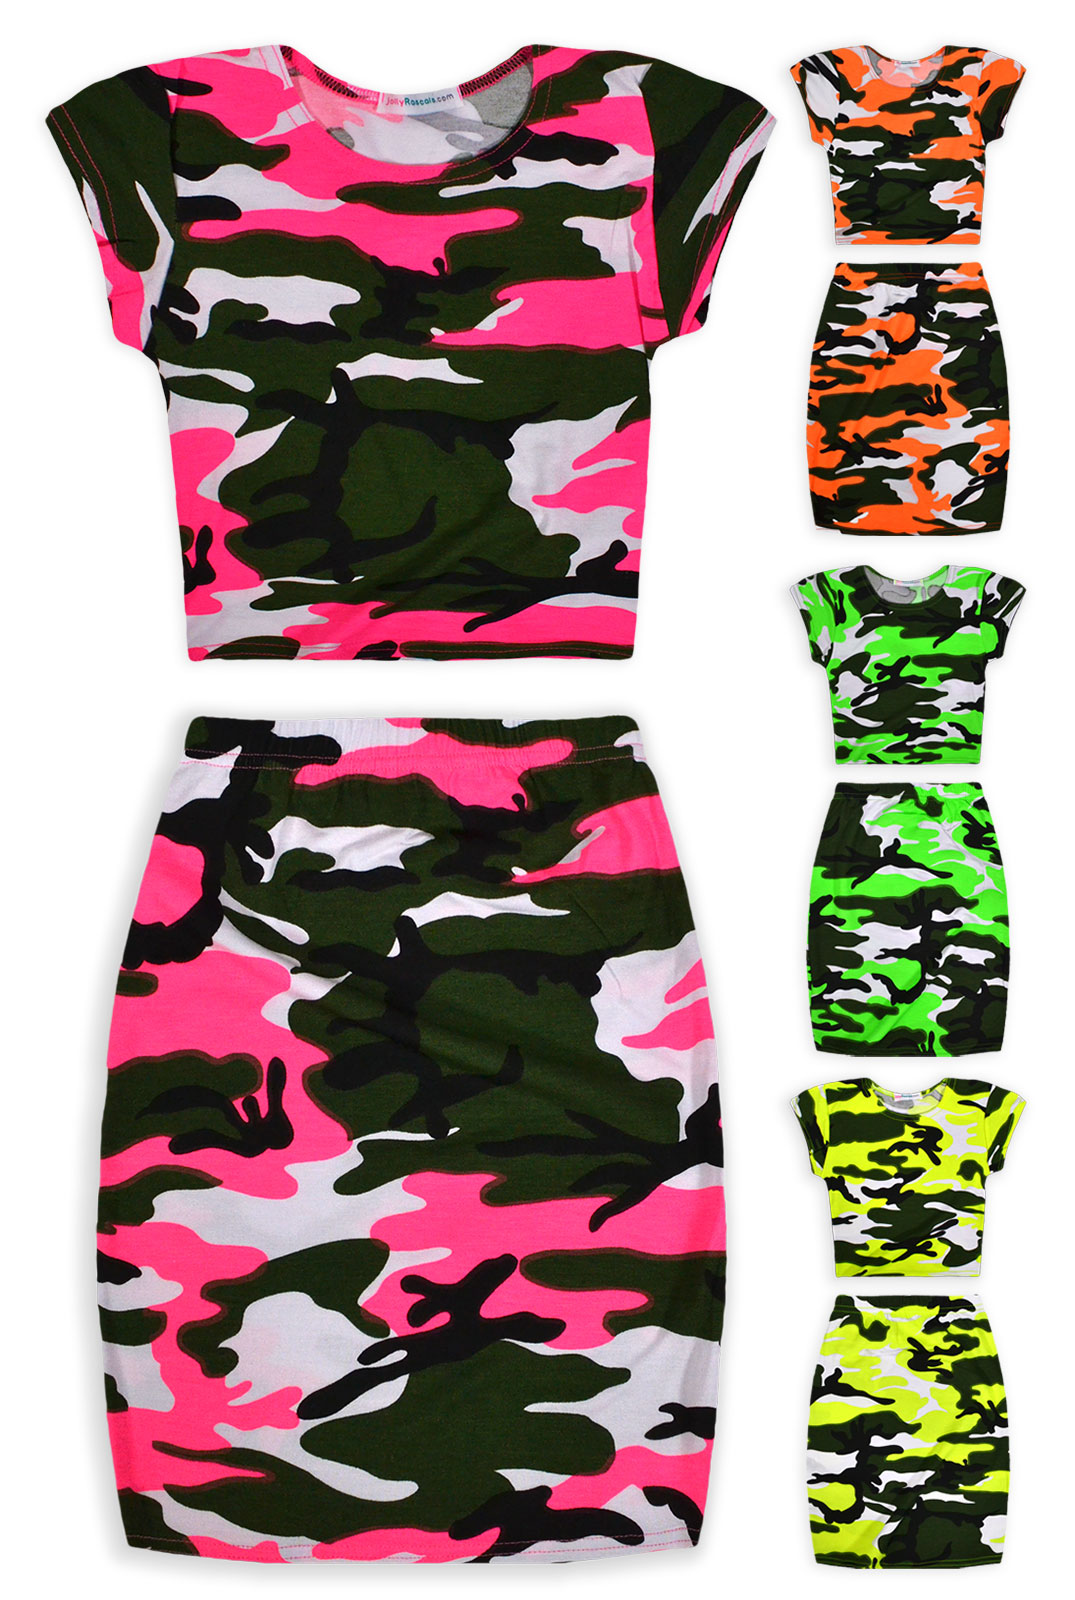 b1991d8139127 Girls Neon Camo Crop Top And Skirt Outfit New Kids Summer Set Ages 7-13